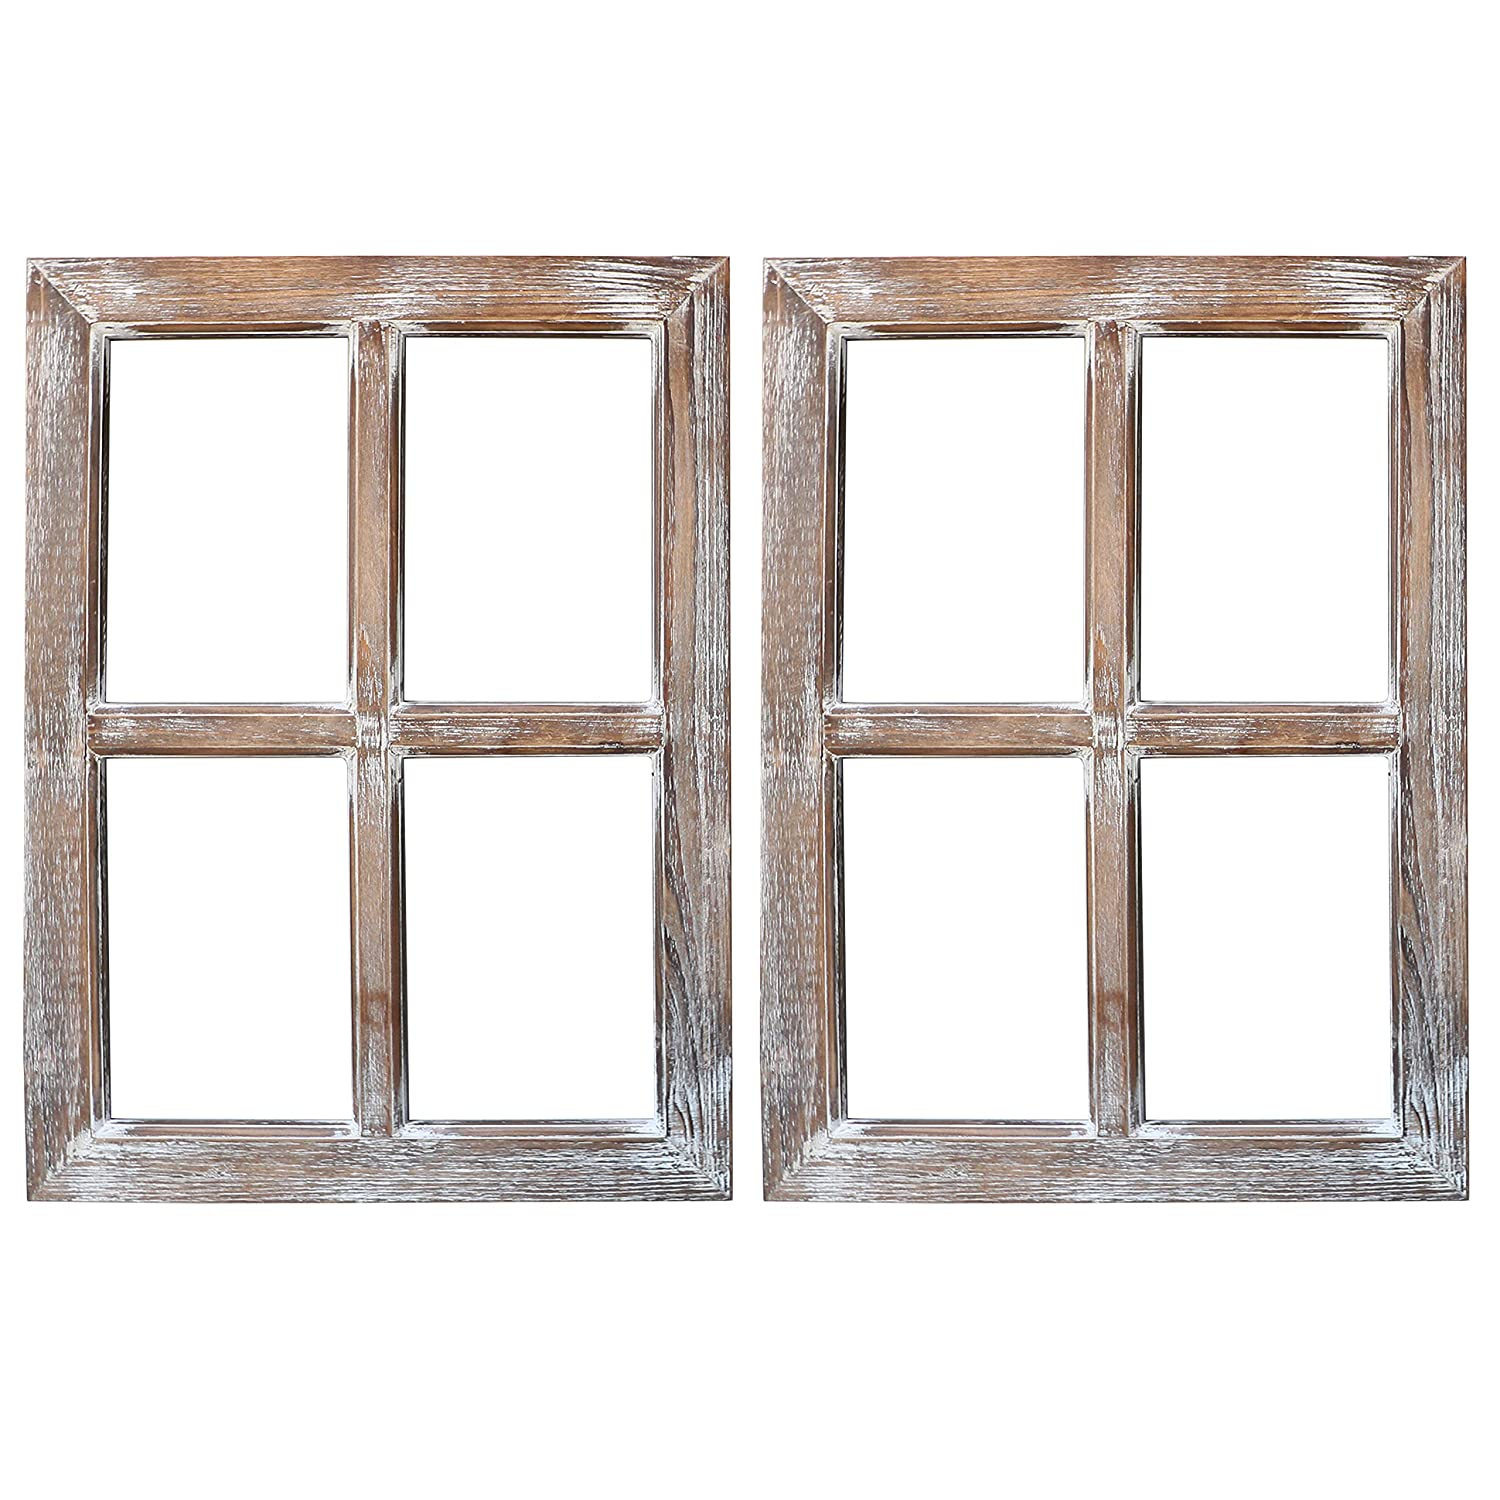 "Barnyard Designs Rustic Window Barnwood Frame Primitive Country Farmhouse Wall Decor 18"" x 24"" (2-Pack)"